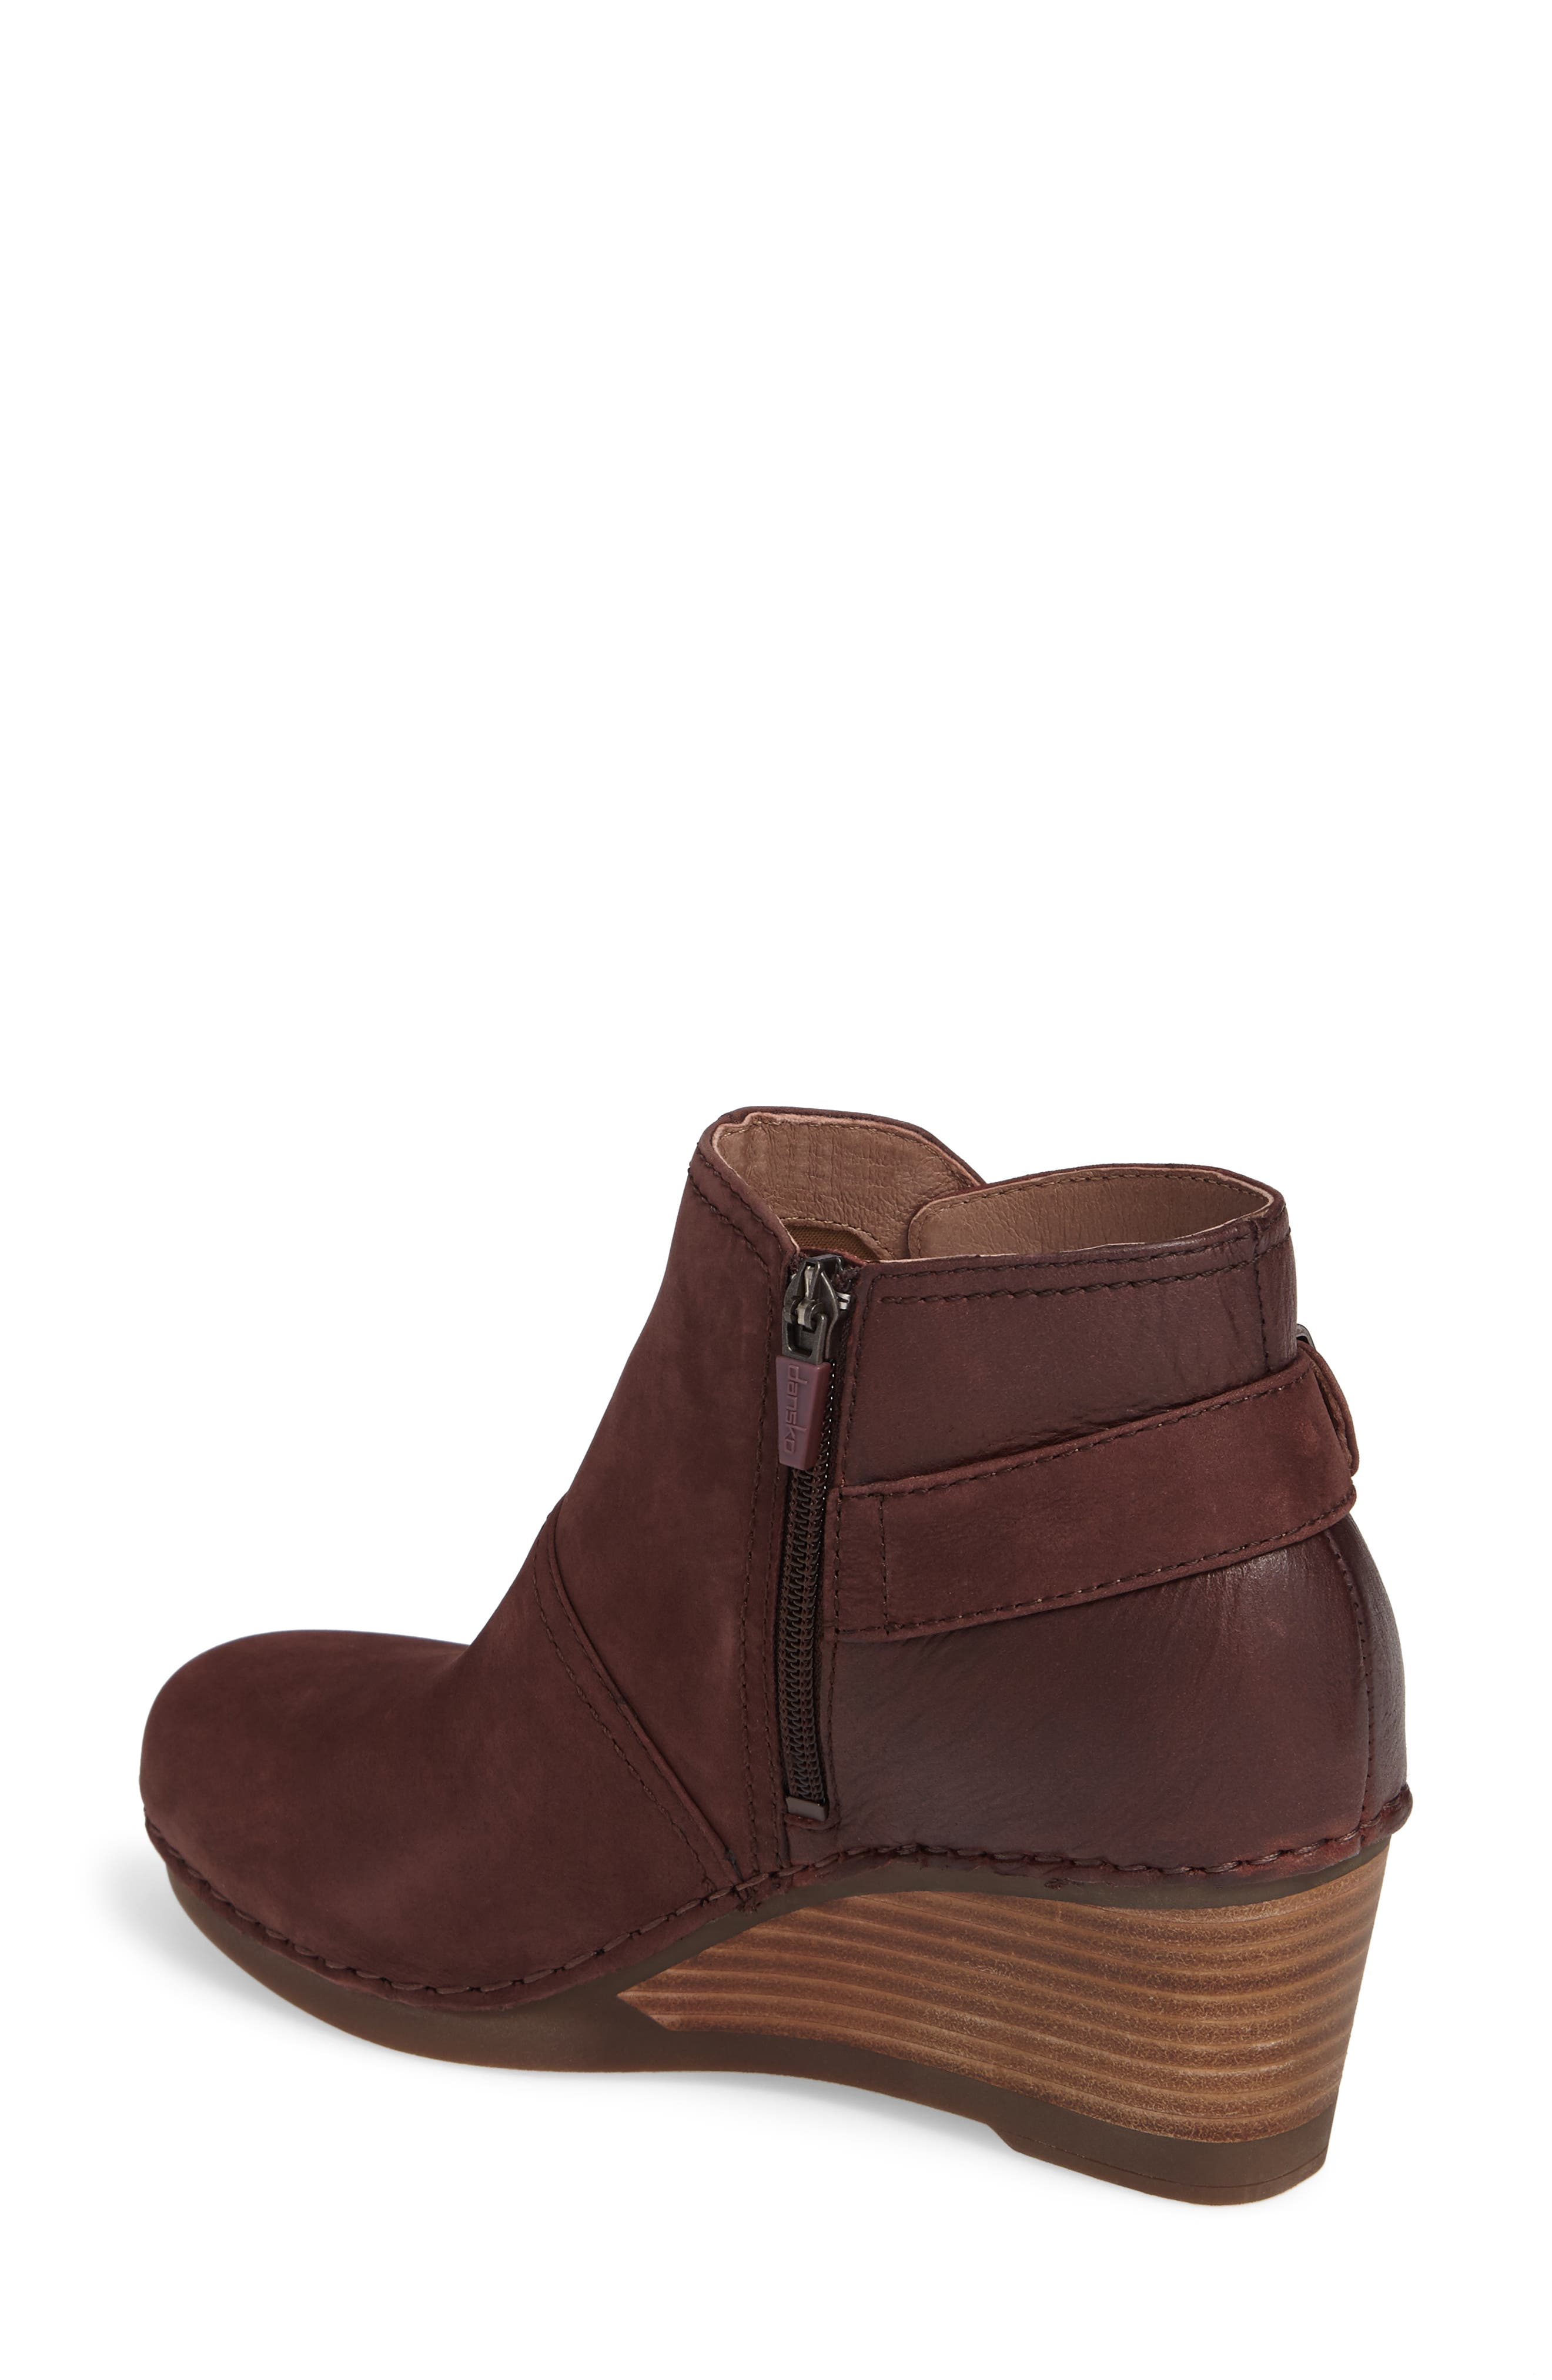 Alternate Image 2  - Dansko 'Shirley' Wedge Bootie (Women)